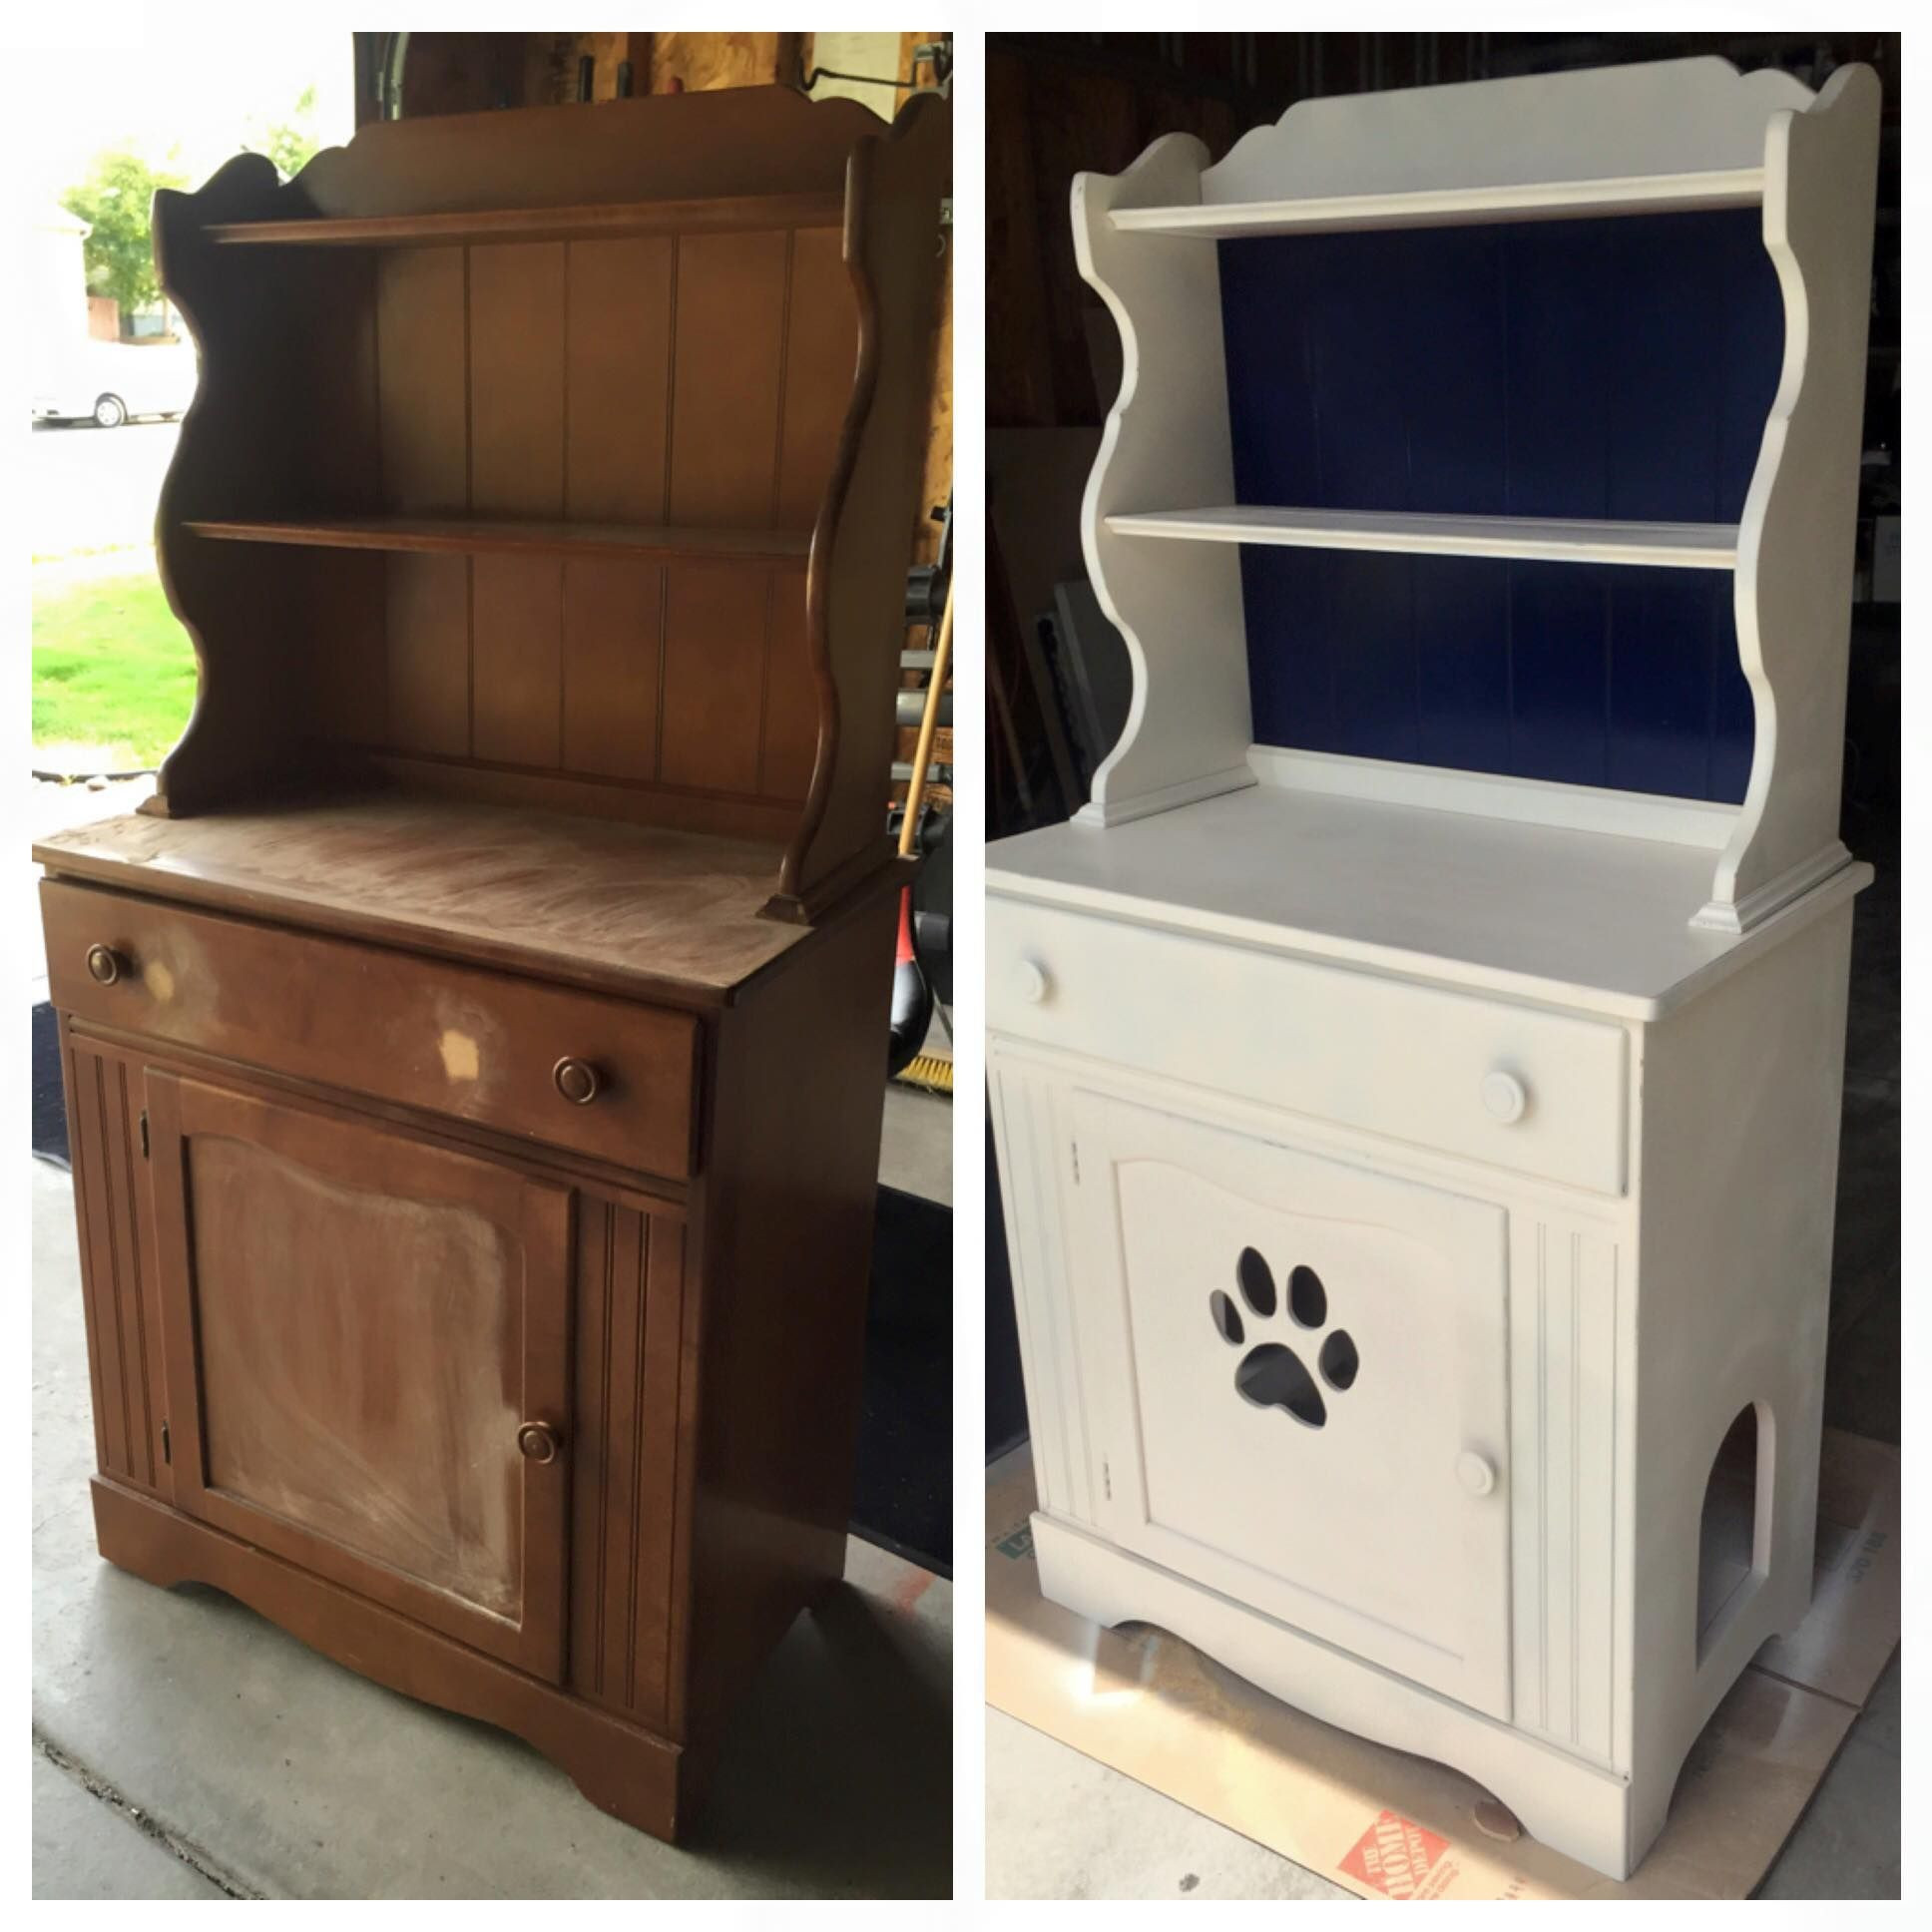 Best ideas about DIY Litter Box . Save or Pin Litter Robot Cabinet Diy – Cabinets Matttroy Now.